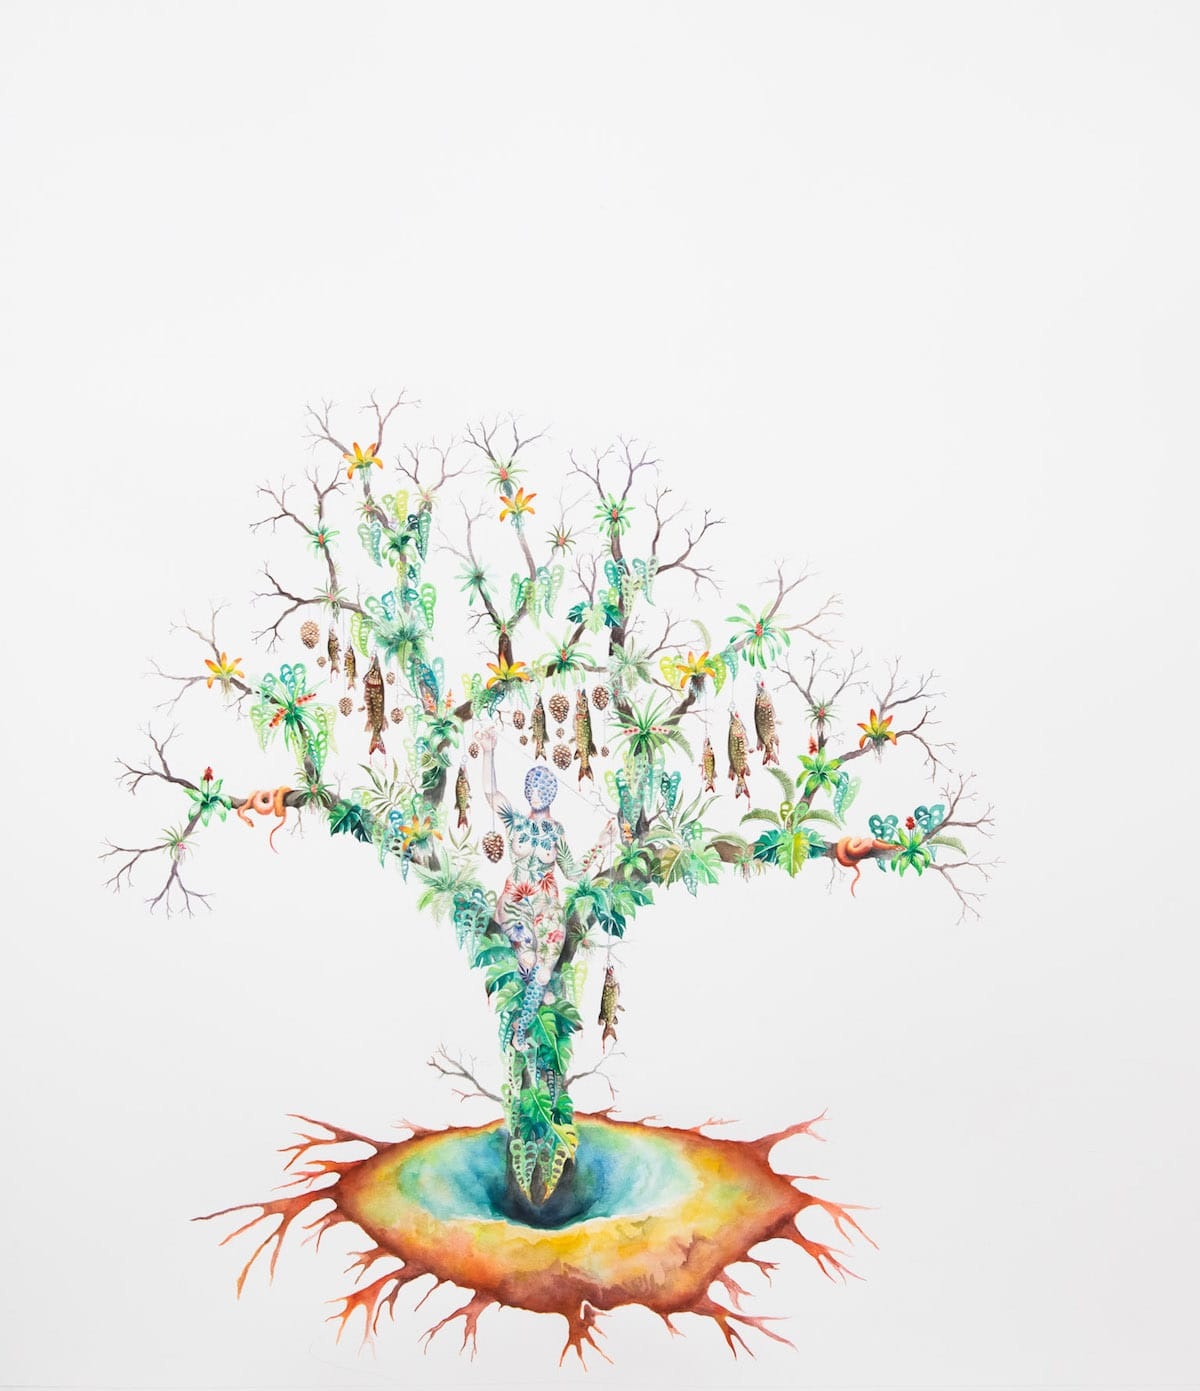 Watercolor Paintings of Utopian Future by Robin Crofut-Brittingham